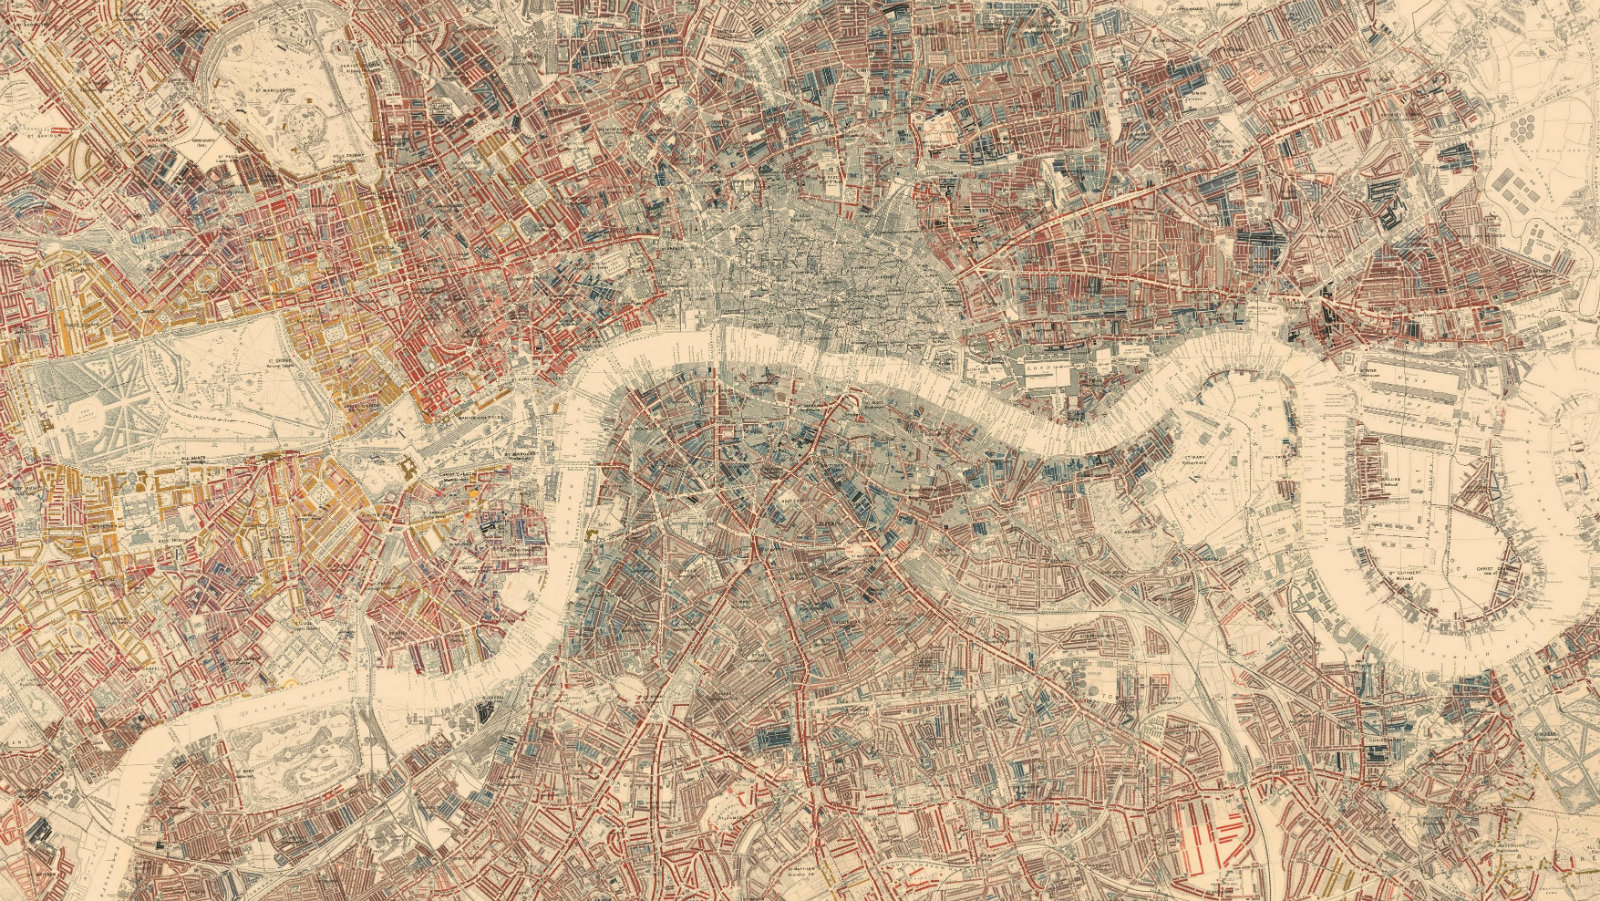 A colourful overhead map of London created by Charles Booth. The Thames is clearly visible. The various colours represent levels of social class as classified by the original researchers.